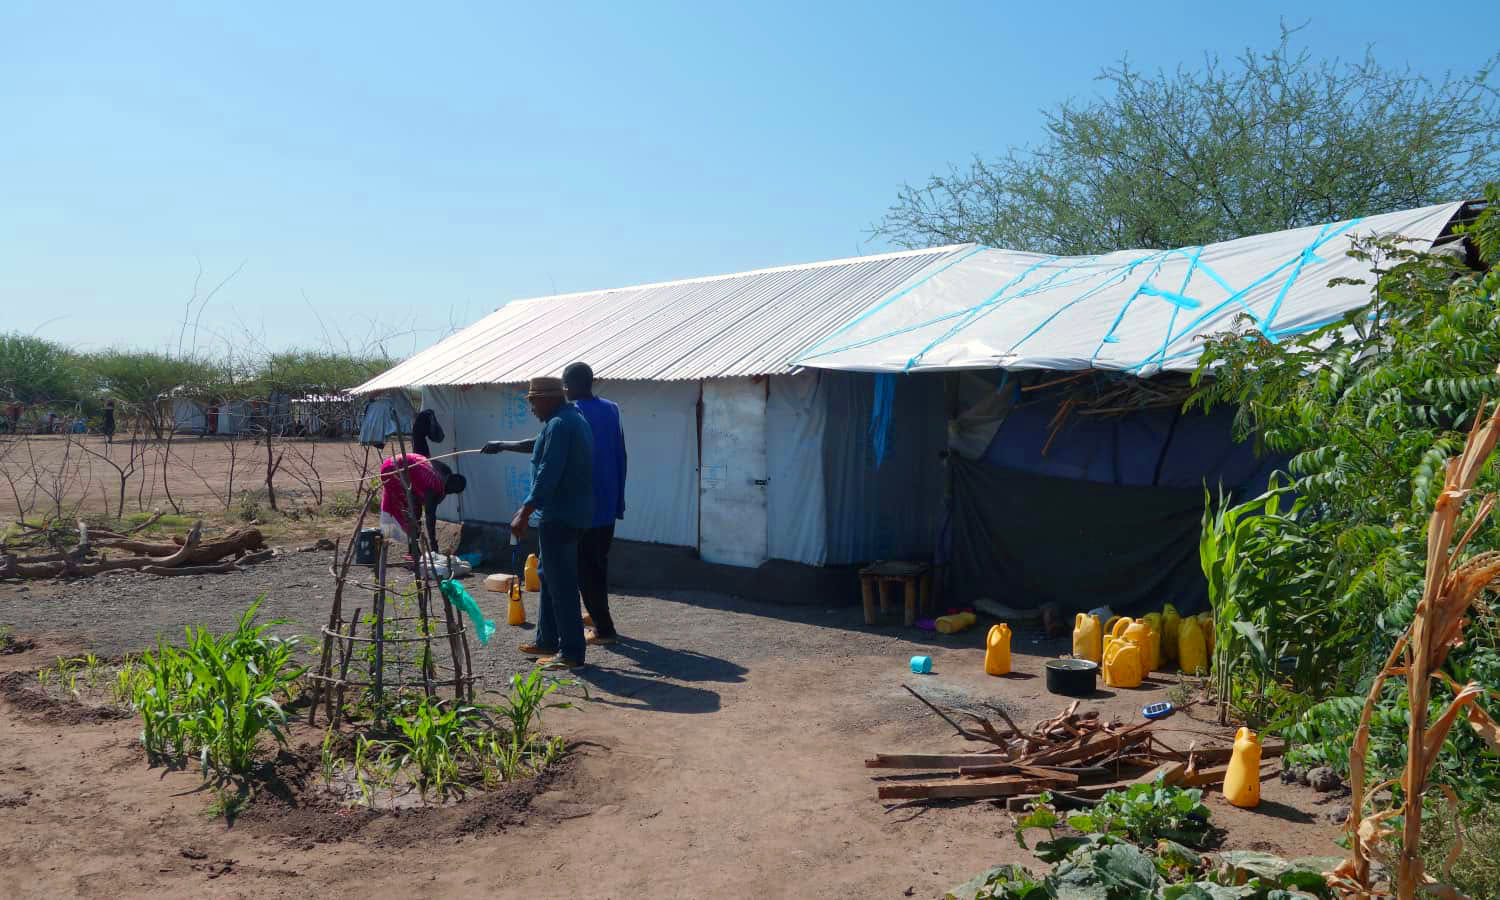 For refugees living in the Kalobeyei Settlement in northern Kenya, urban farming could be a viable strategy to secure their livelihoods.